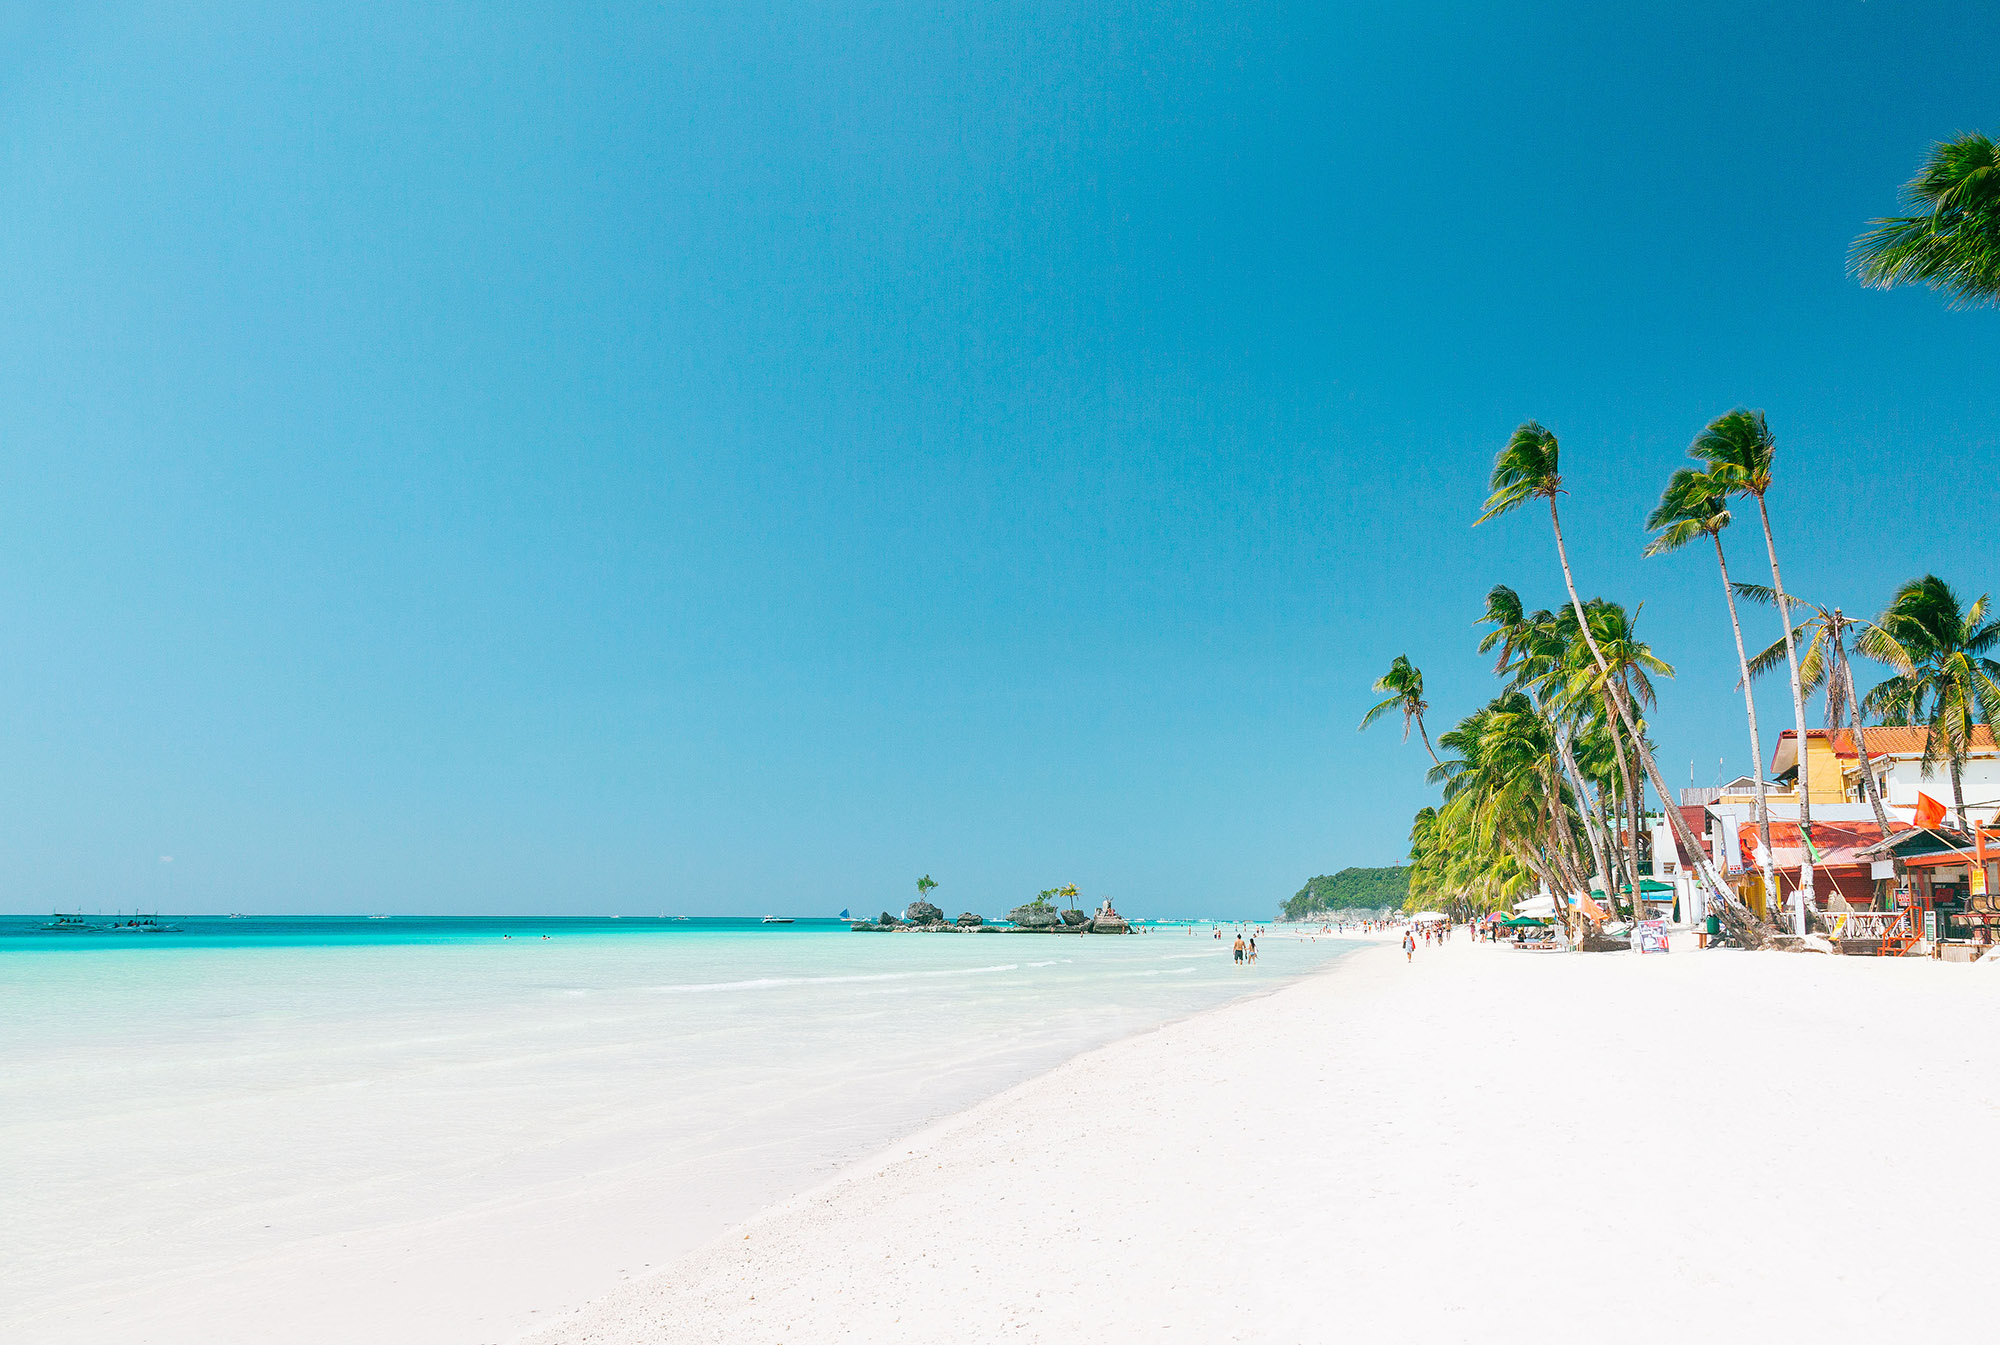 Expanse of white sand and turquoise waters on Boracay Island with buildings and palms further up